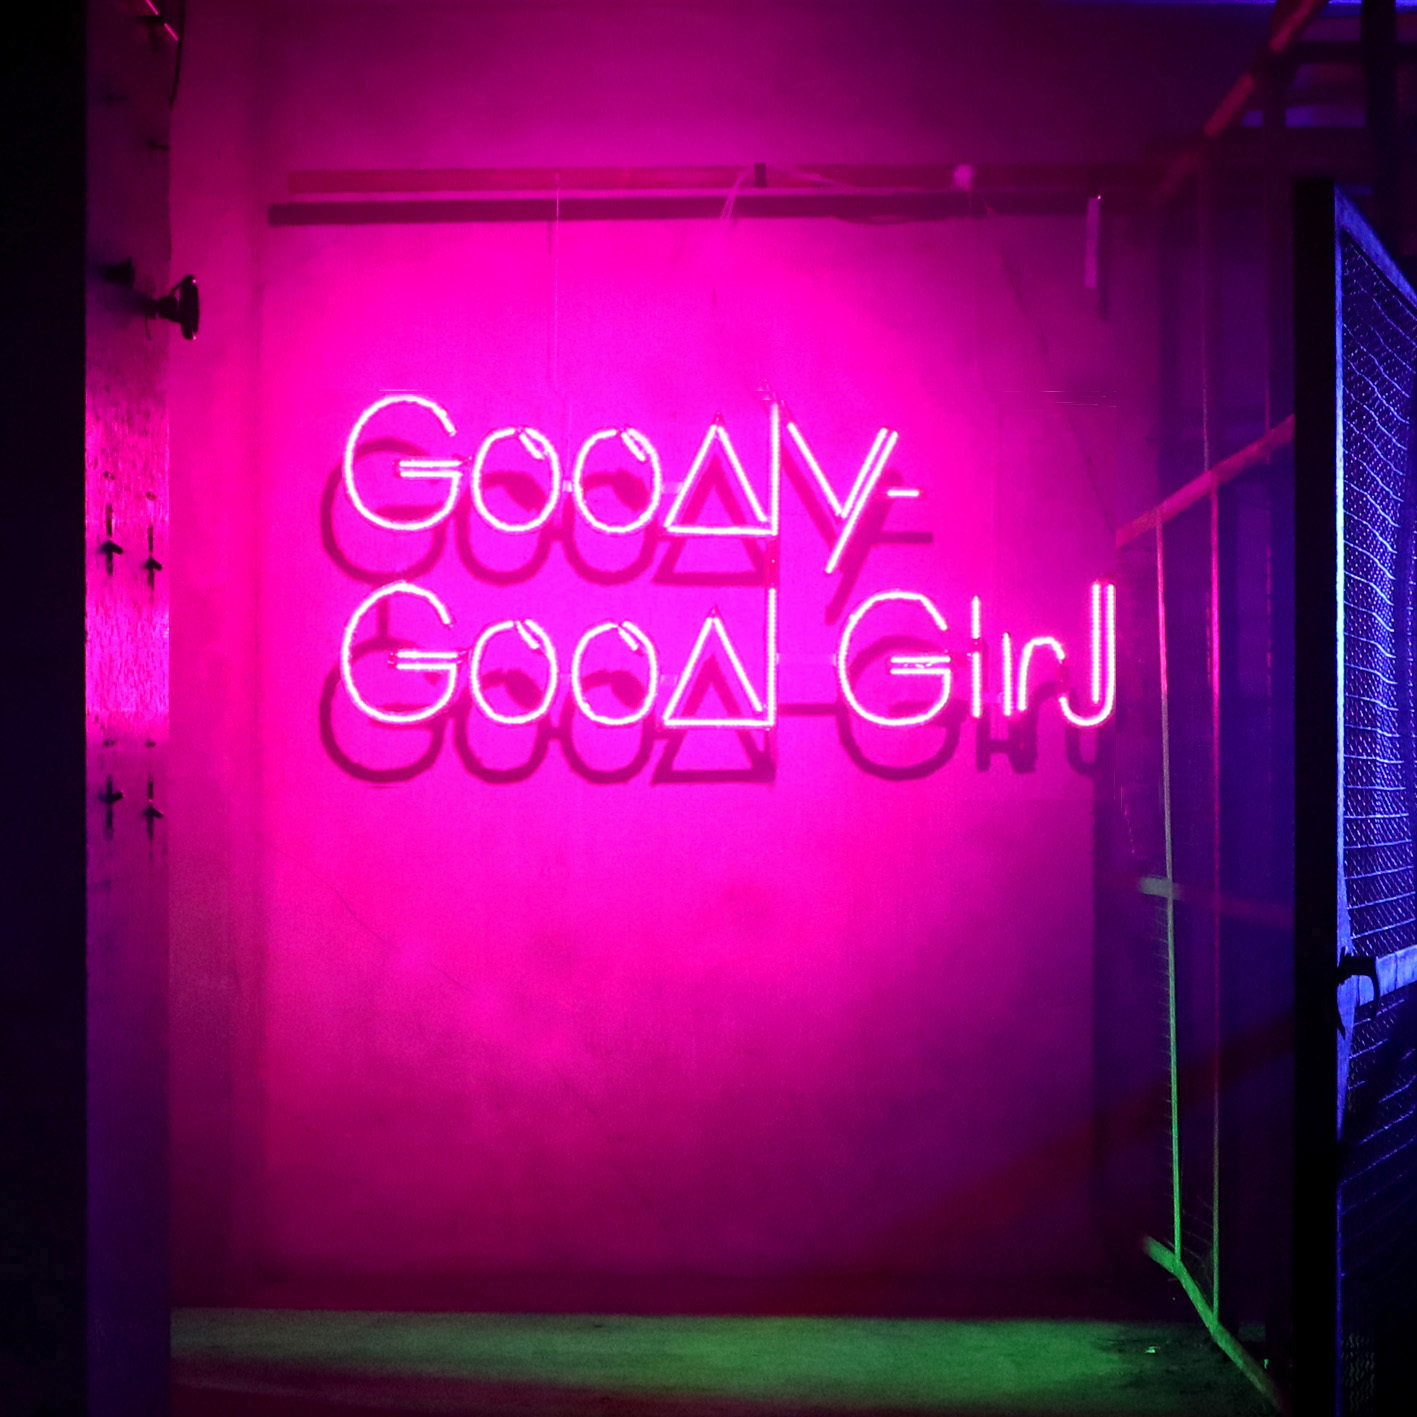 ソロSHINJIRO ATAE (from AAA) 新曲「Goody-Good Girl」